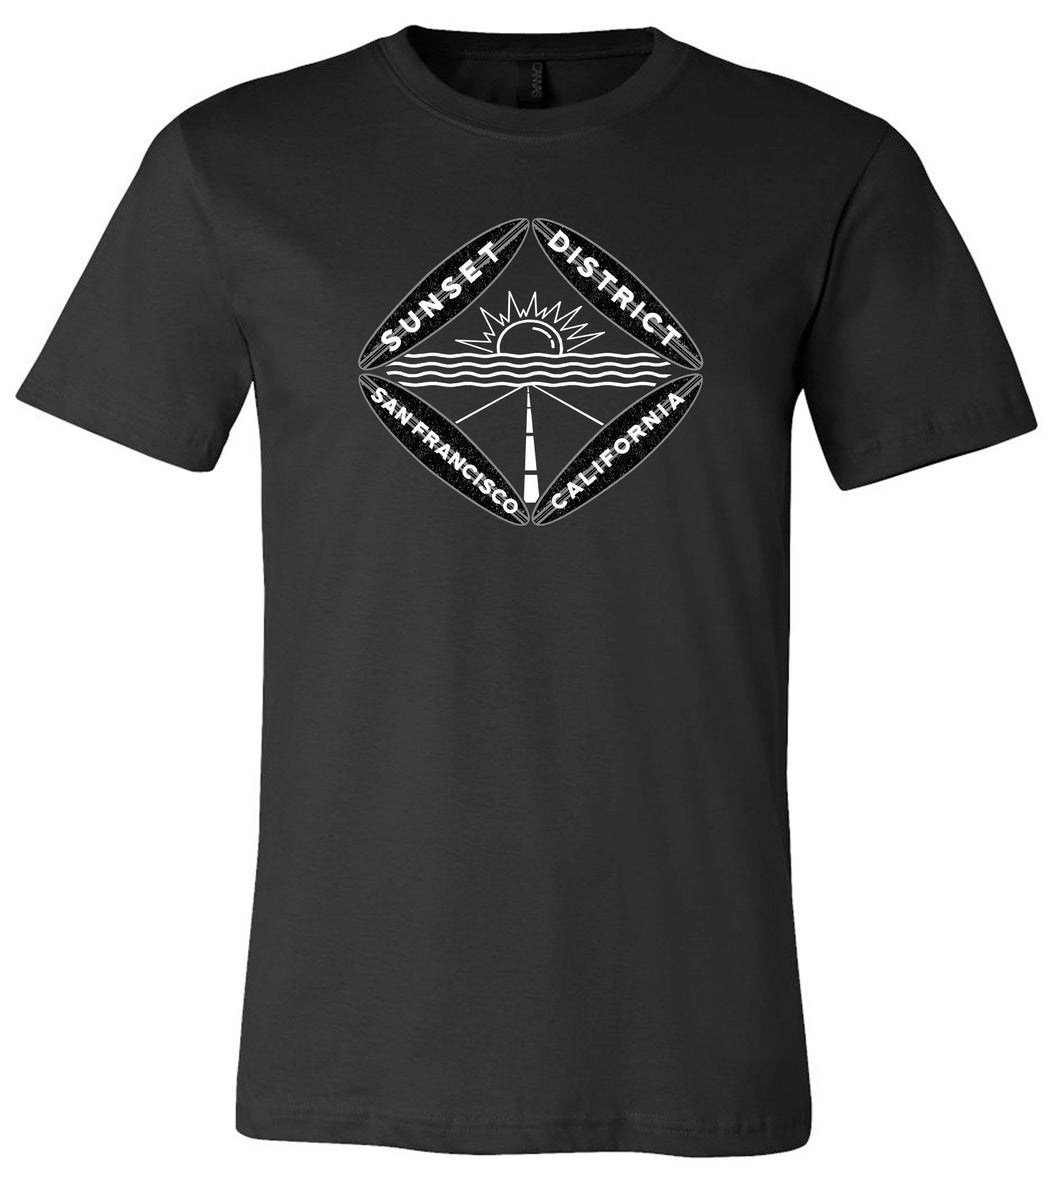 Sunset District Men's T-Shirt